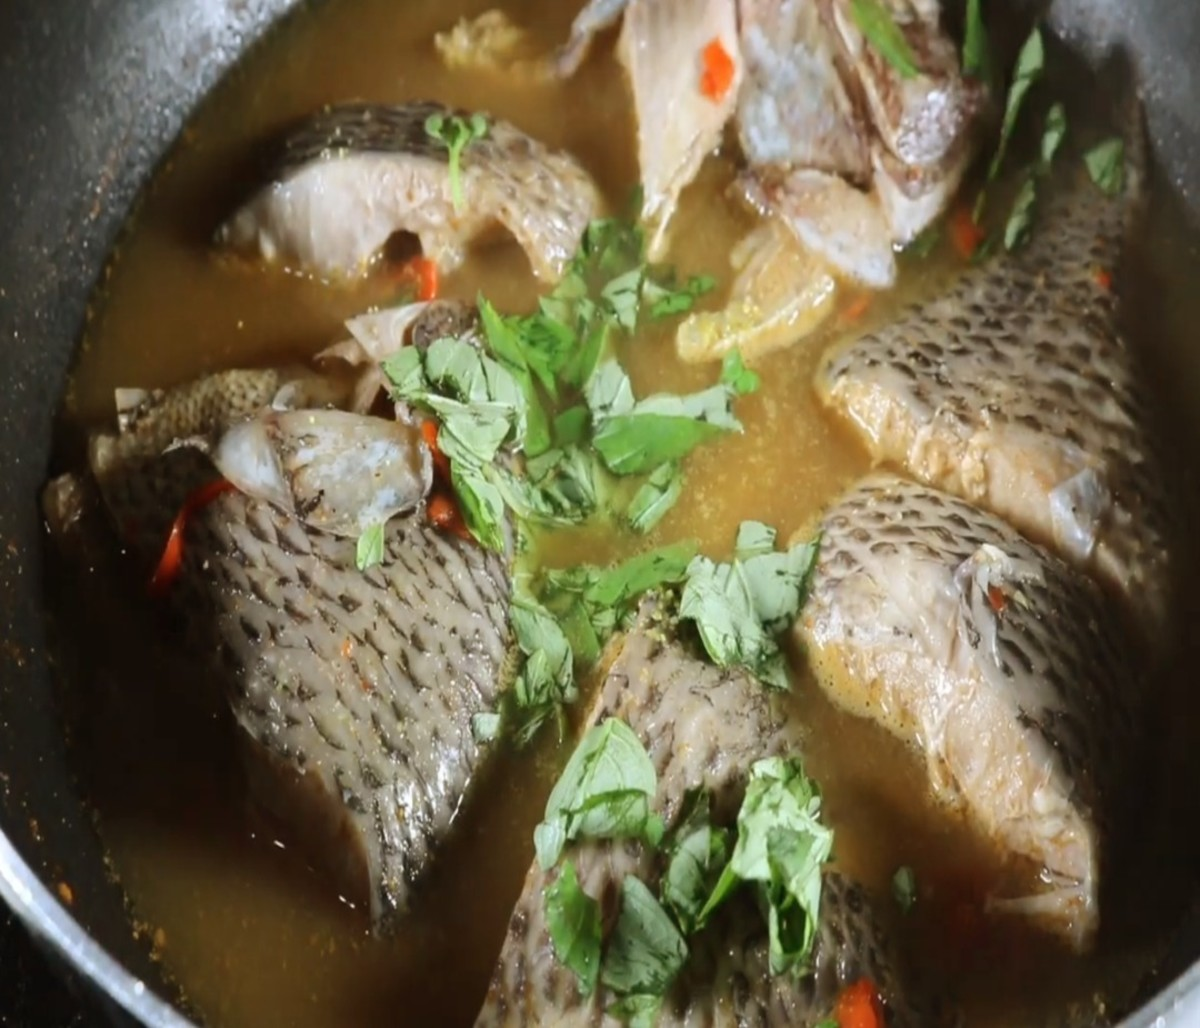 Garnish the fish pepper soup with cilantro before serving